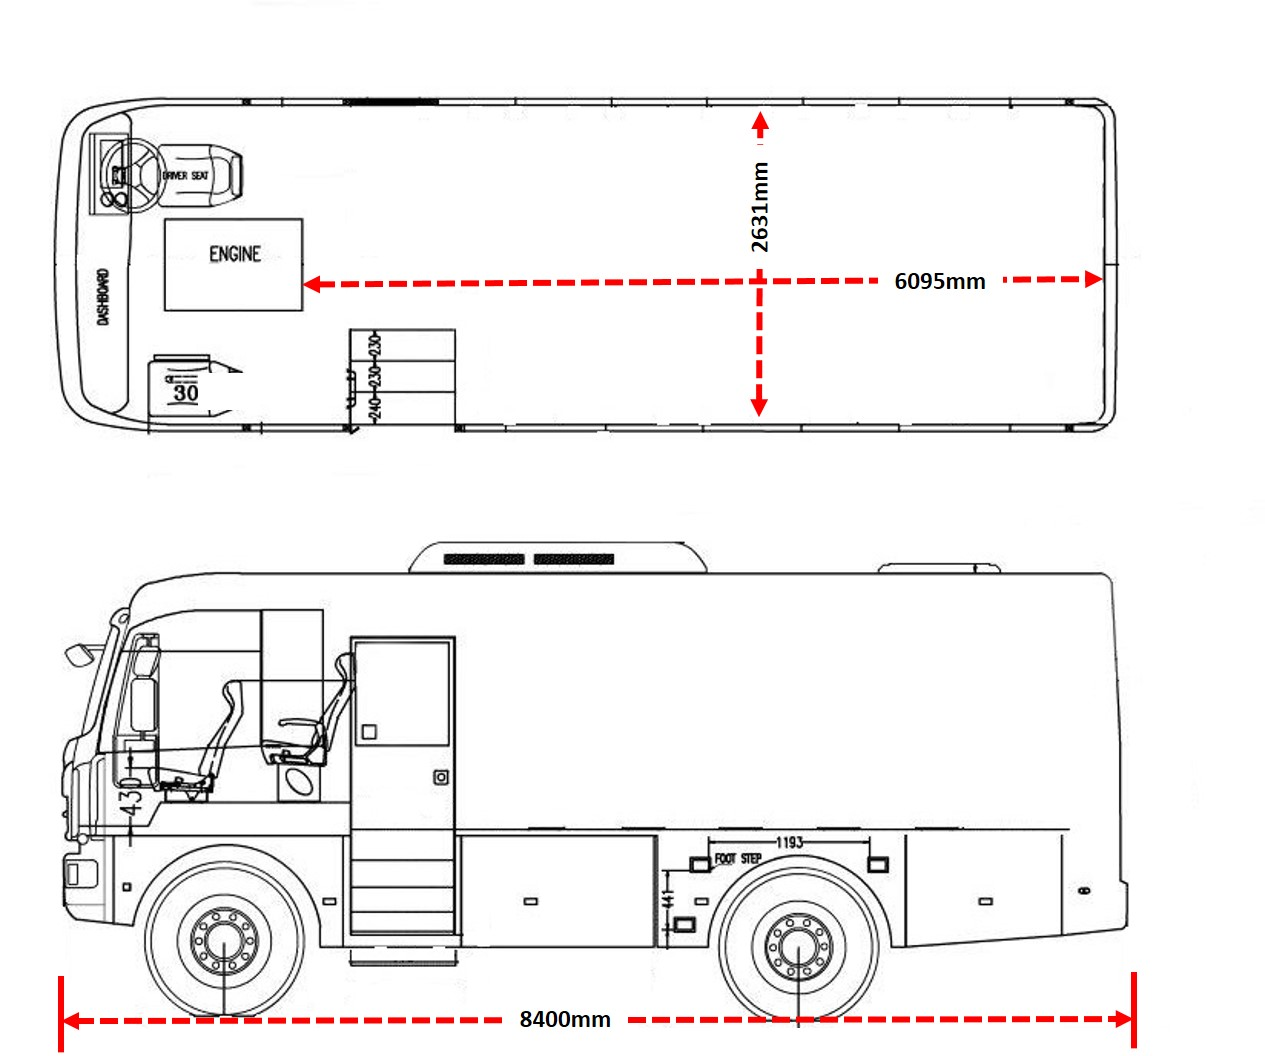 I Bus 800 4wd Motorhome moreover P 0900c15280092a3d besides Car Indicator Lights also P 0996b43f81b3db4f moreover Abs kelseyhayes. on anti lock